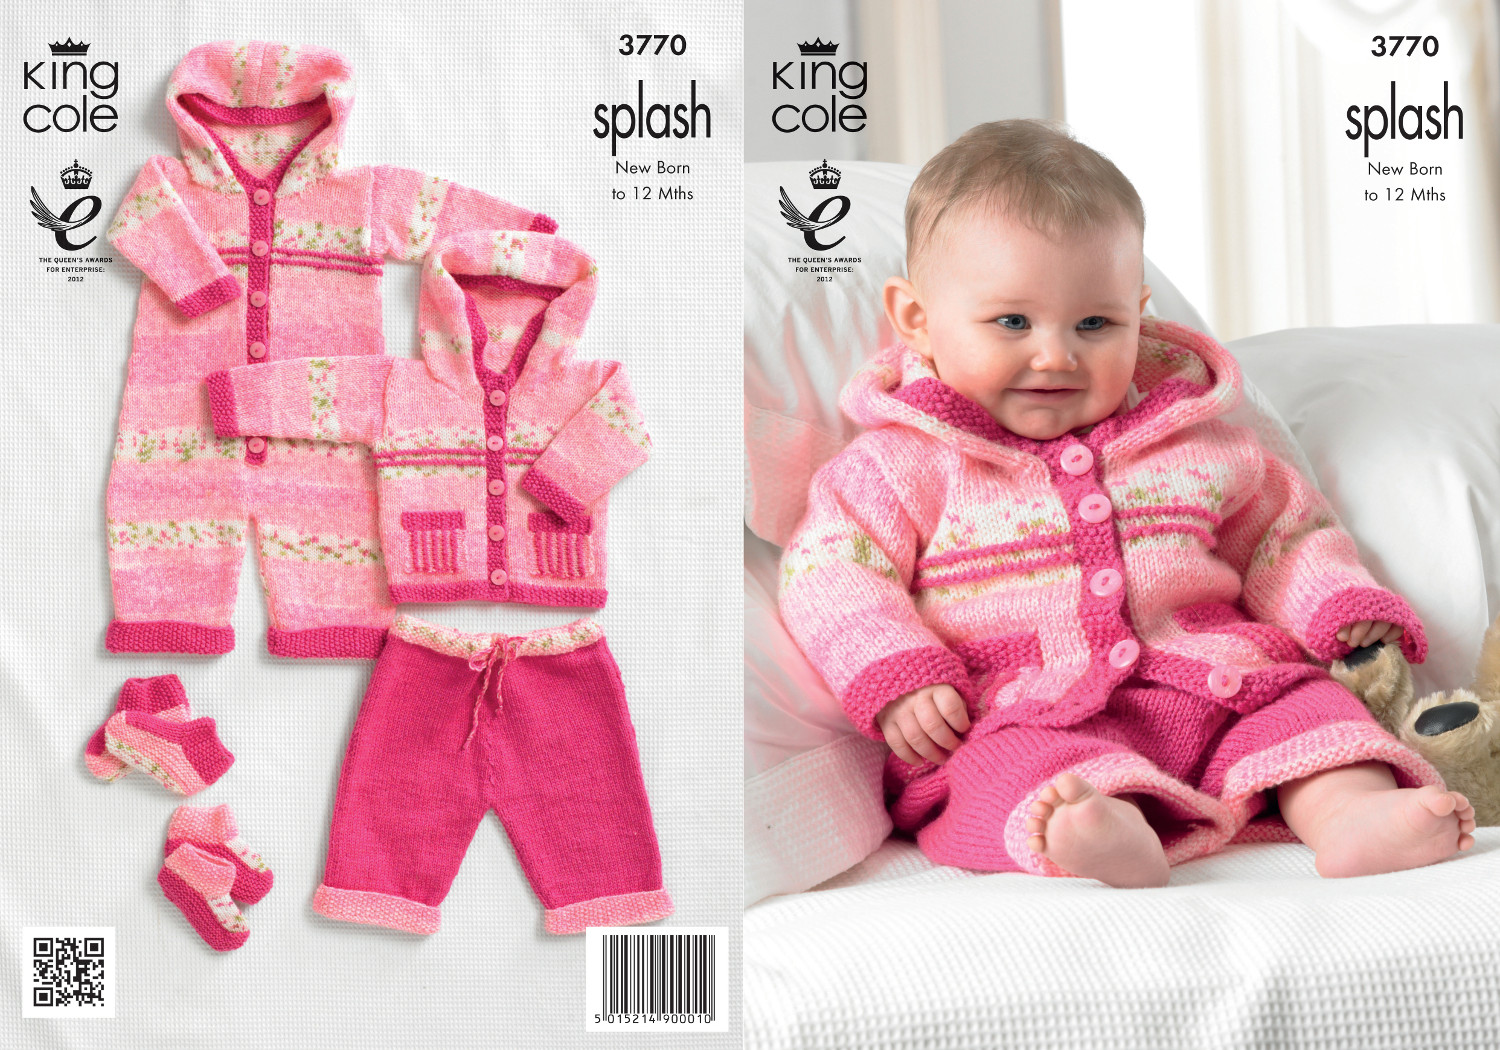 King Cole Double Knitting Pattern Baby Splash DK Coat ...